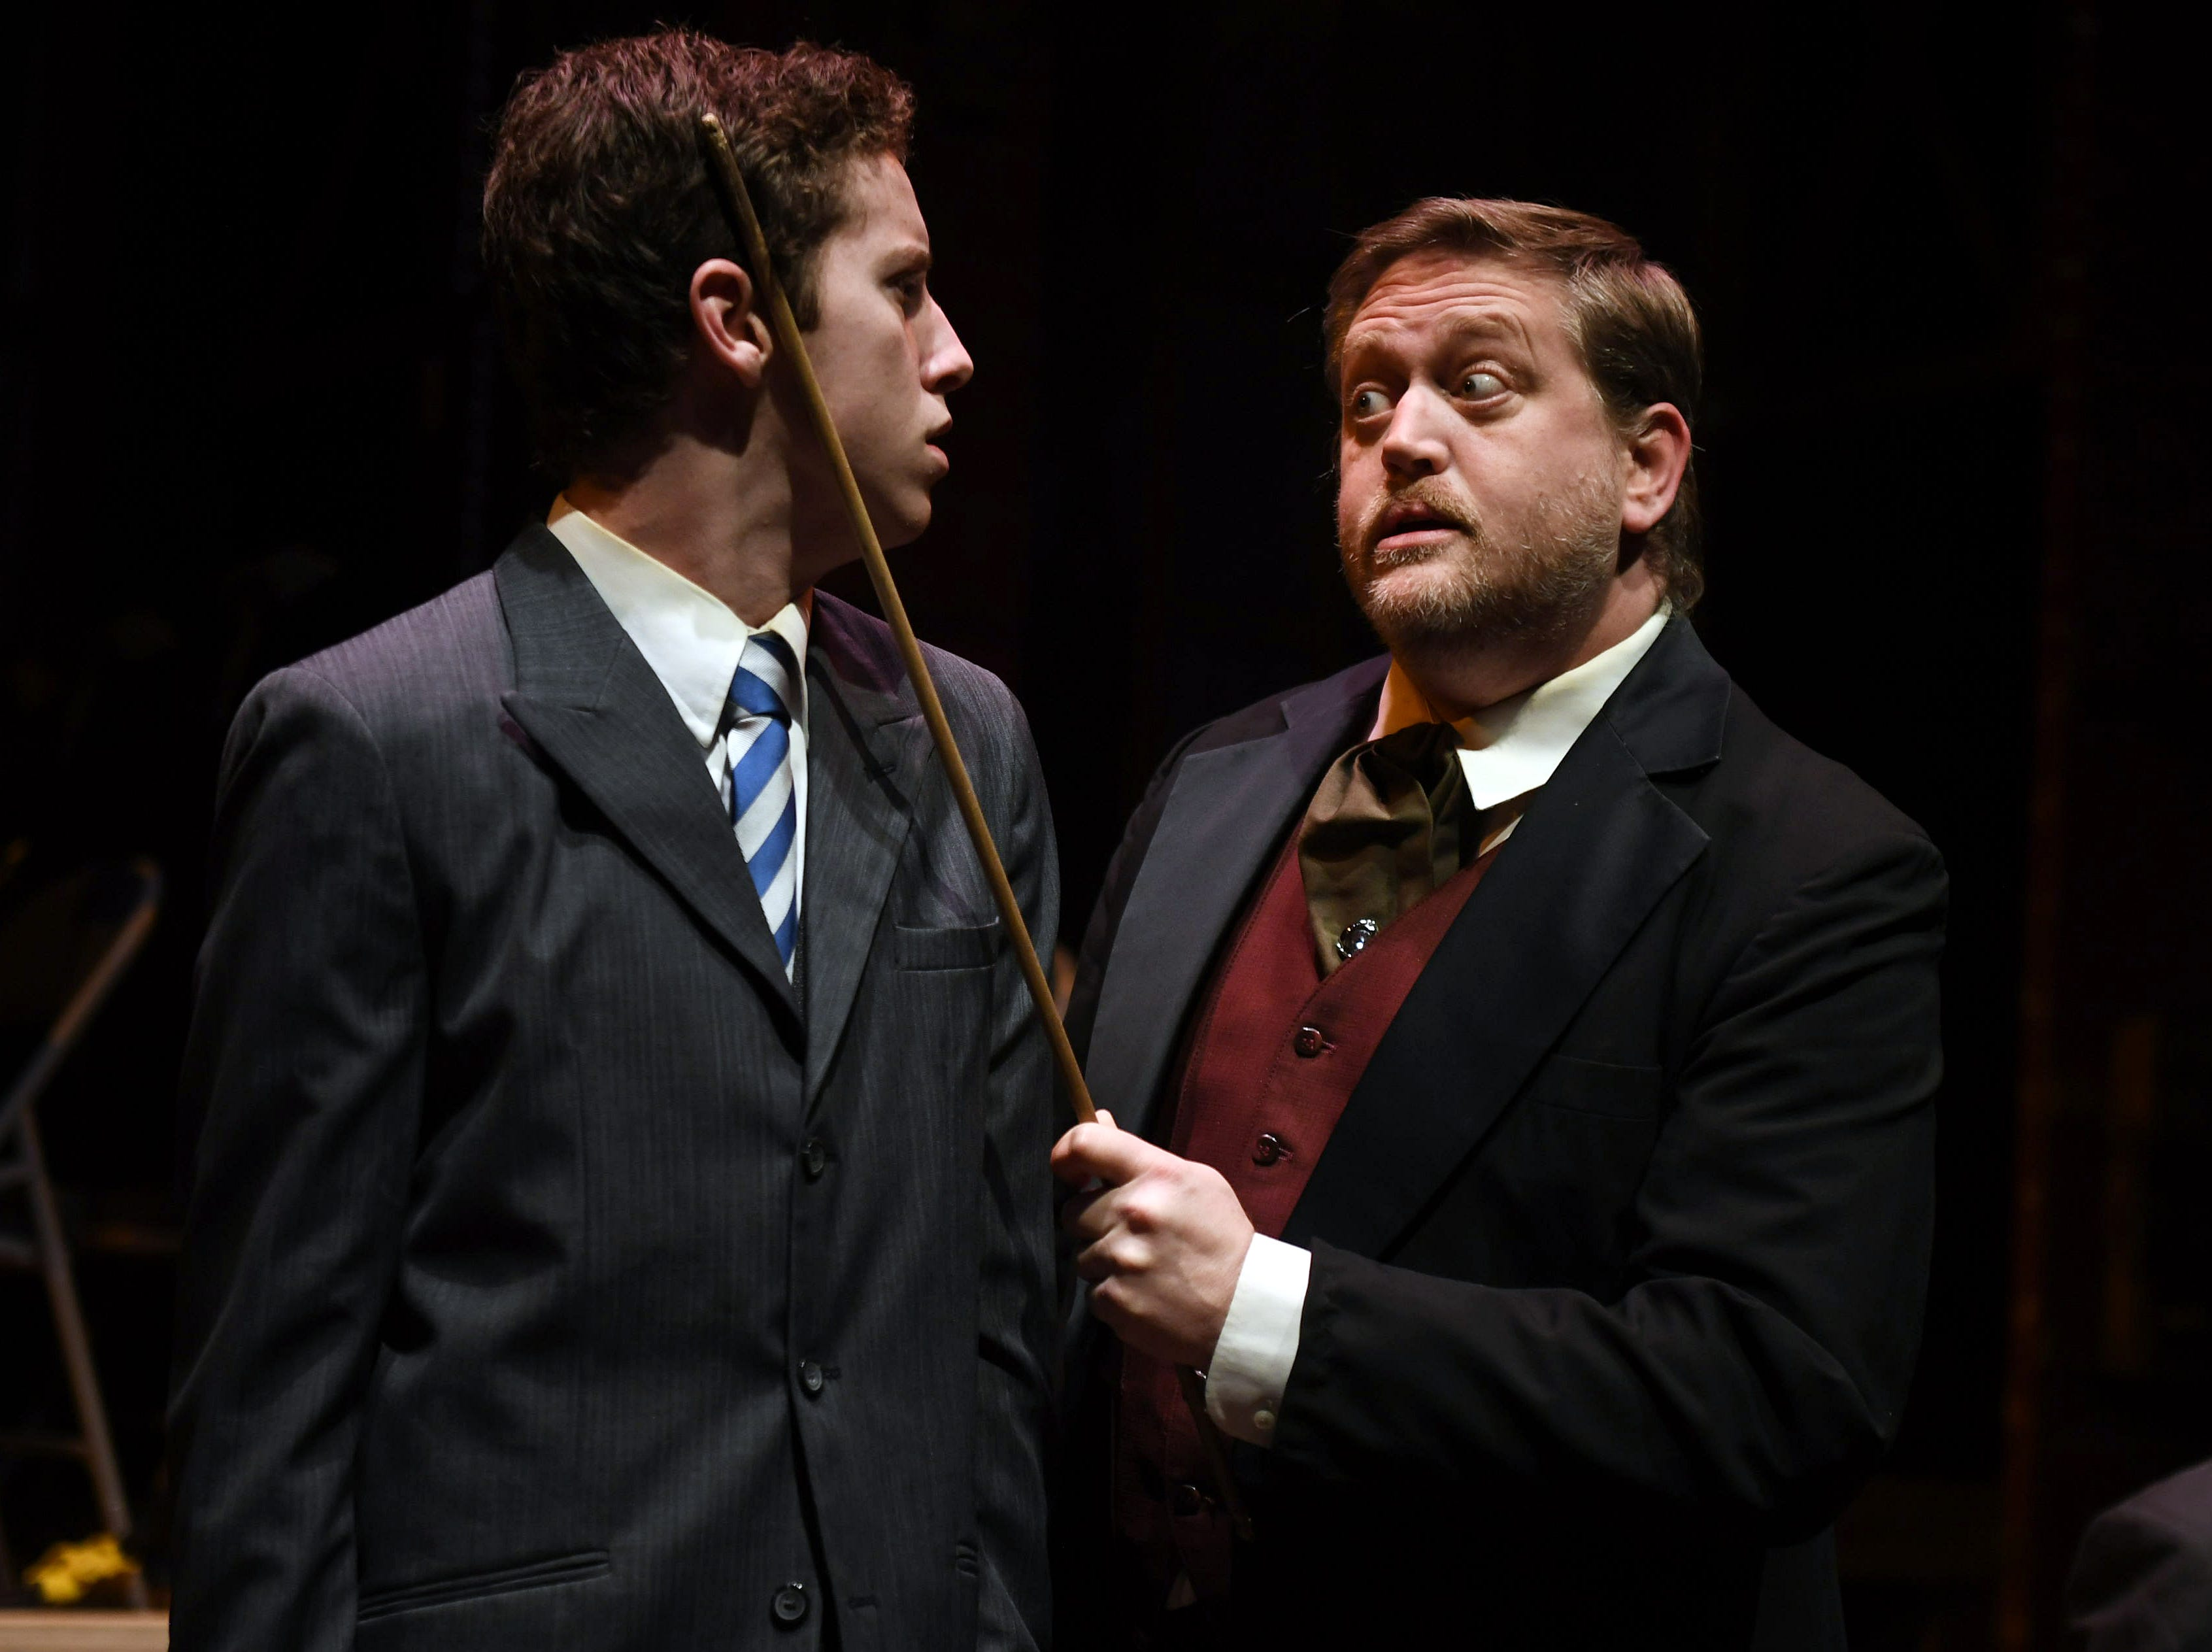 After questioning the rules of his society, Melchior (Spencer Lail) is reprimanded by Herr Sonnenstich (Krystof Kage).